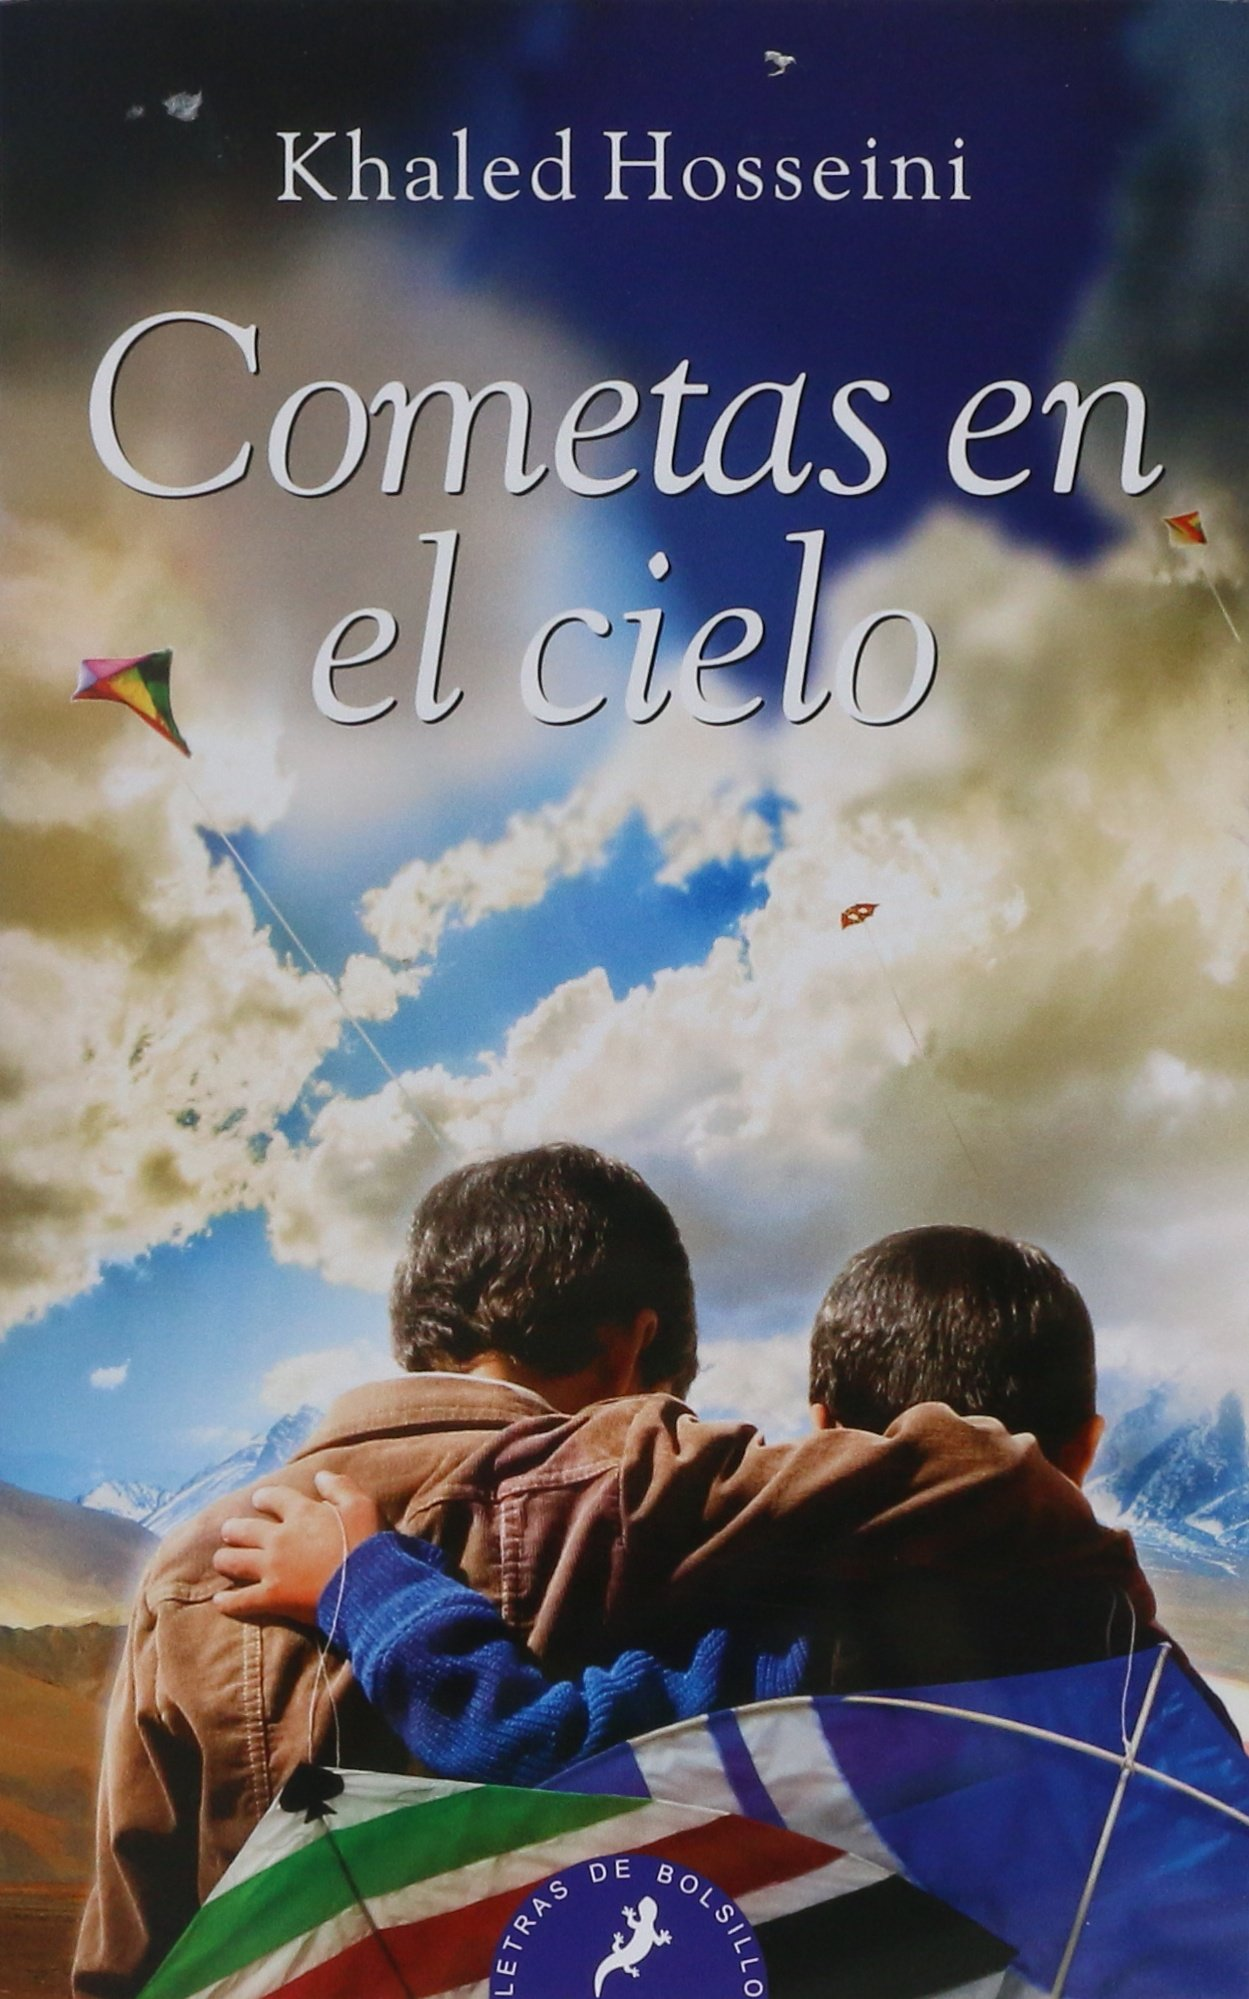 Amazon.com: Cometas en el cielo (Letras de Bolsillo) (Spanish Edition)  (9788478888856): Khaled Hosseini: Books